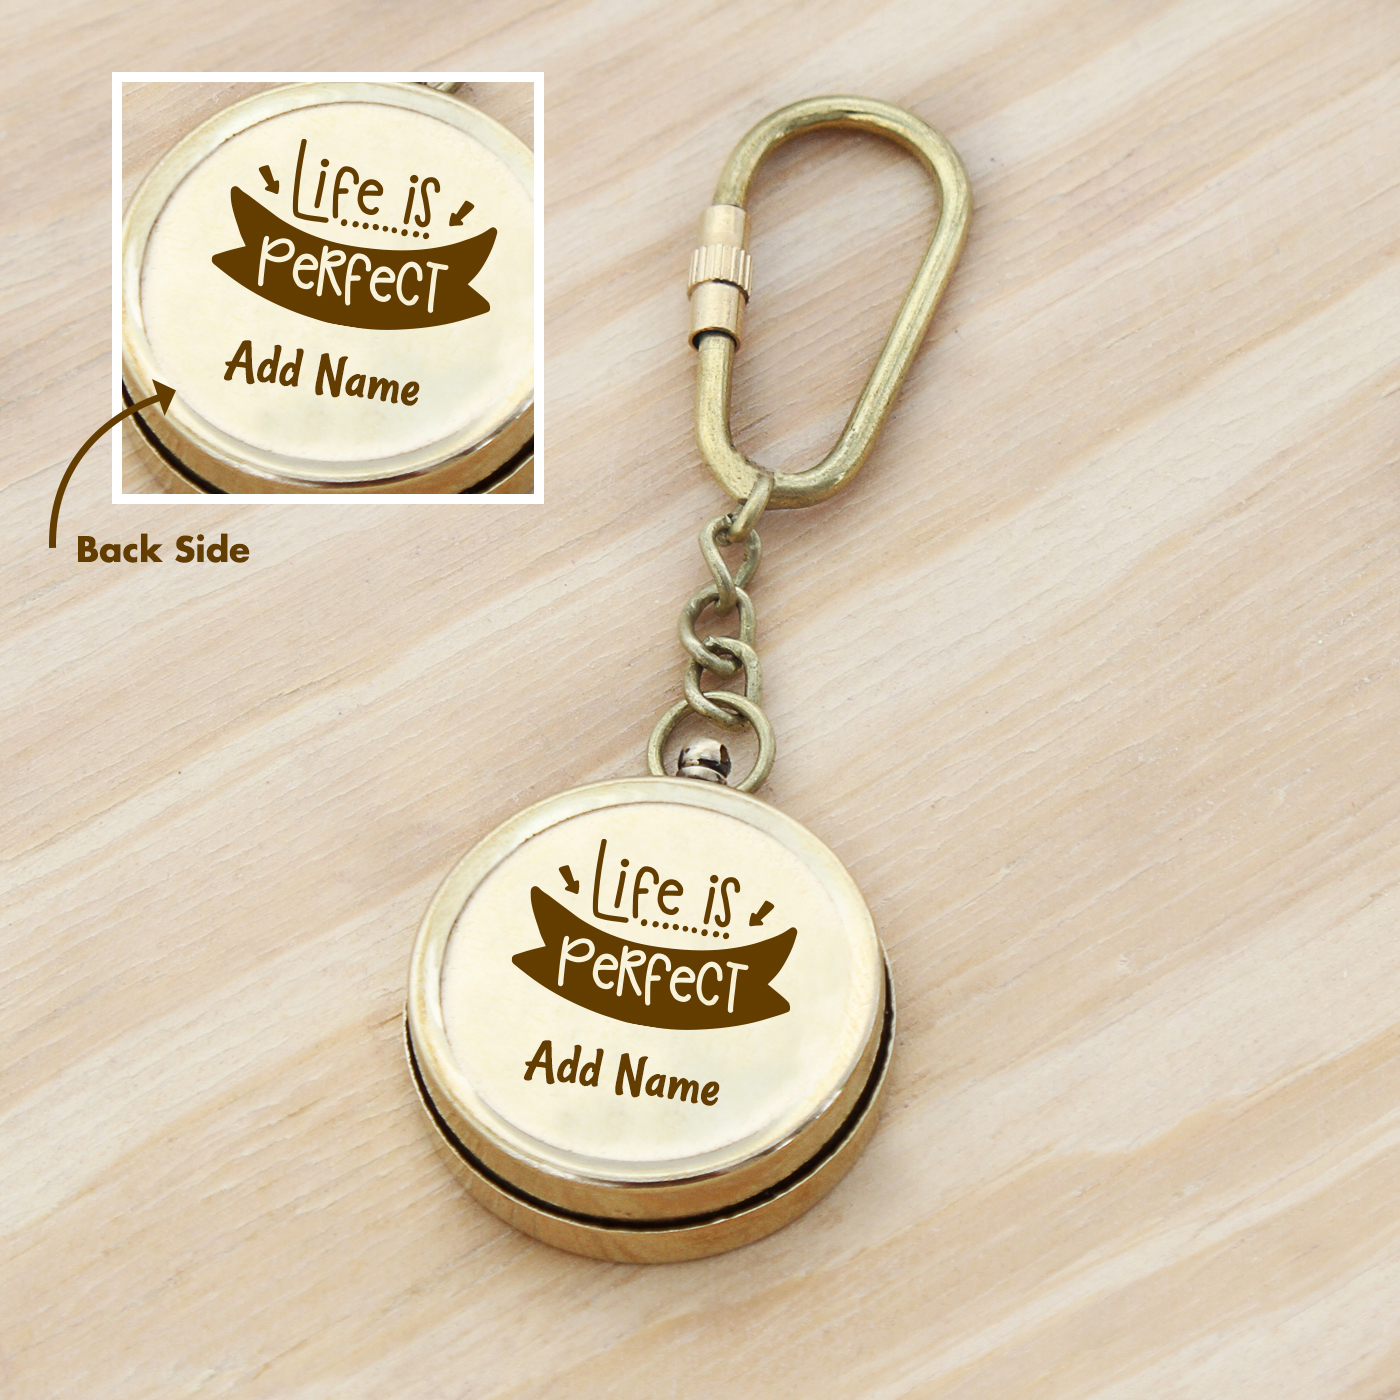 Life-is-Perfect-Personalized-Brass-Compass-Key-Chain